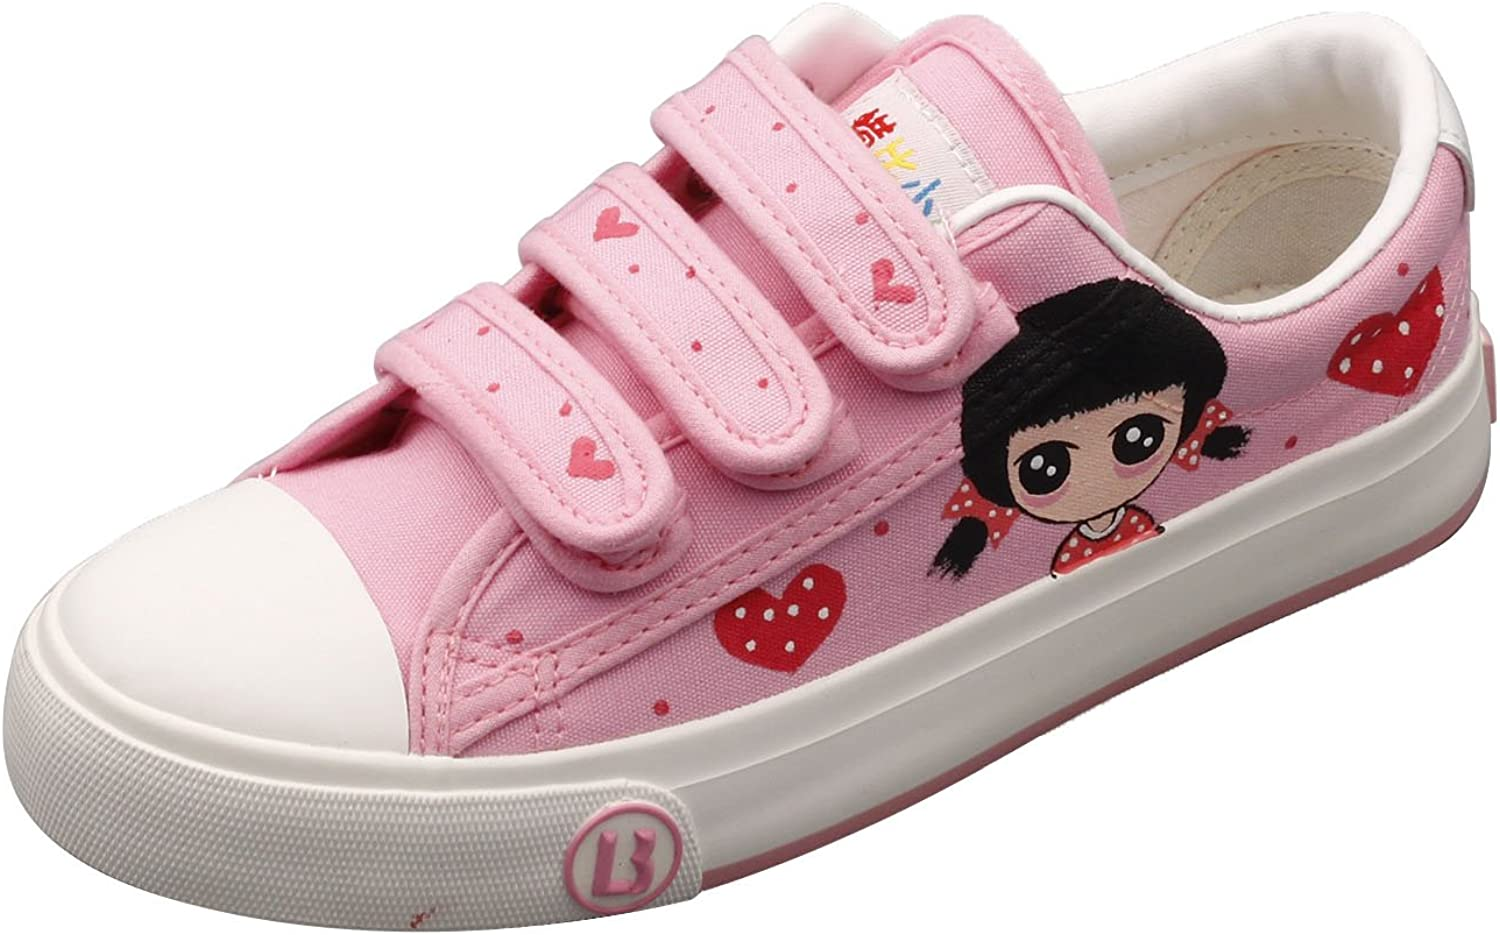 E-LOV Pink Cartoon Big Eyes Girl Hand-Painted Canvas shoes Low Cut Sneakers Hook and Loop Strap Personalized Casual shoes for Women and Men